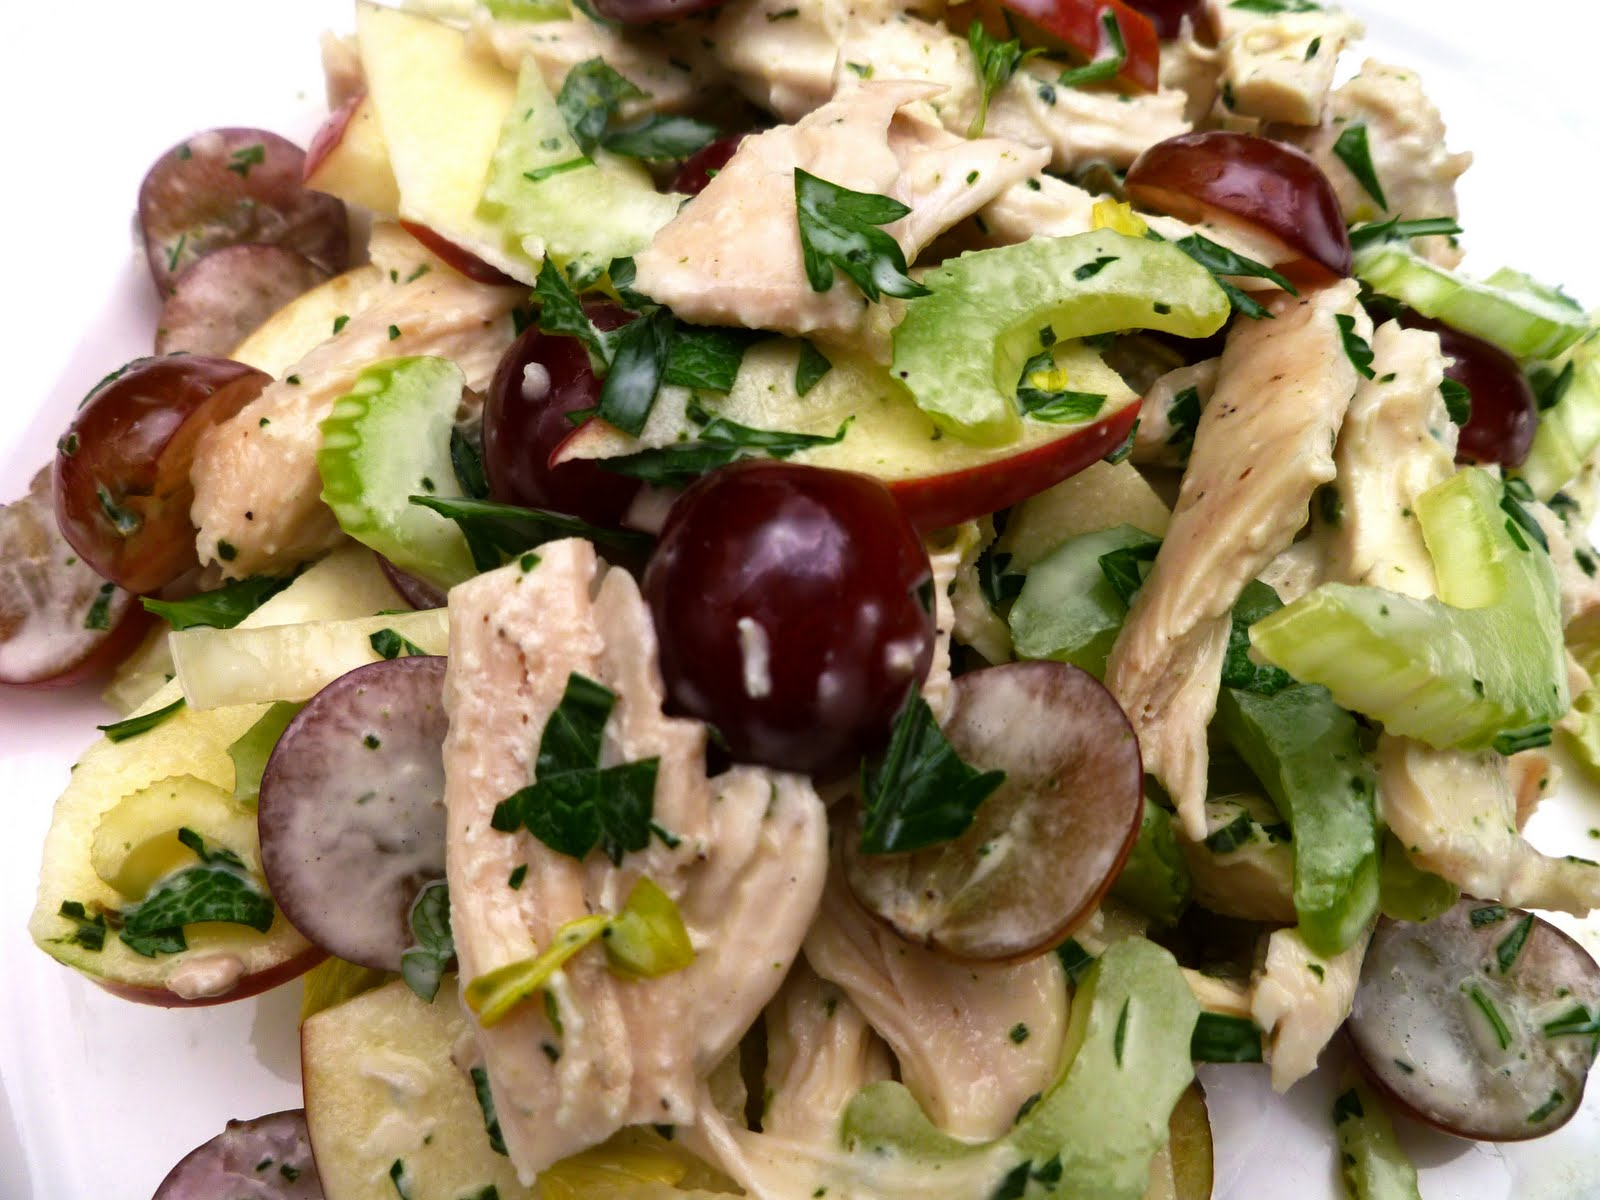 City Home/Country Home: Chicken Tarragon Salad with Apples and Grapes